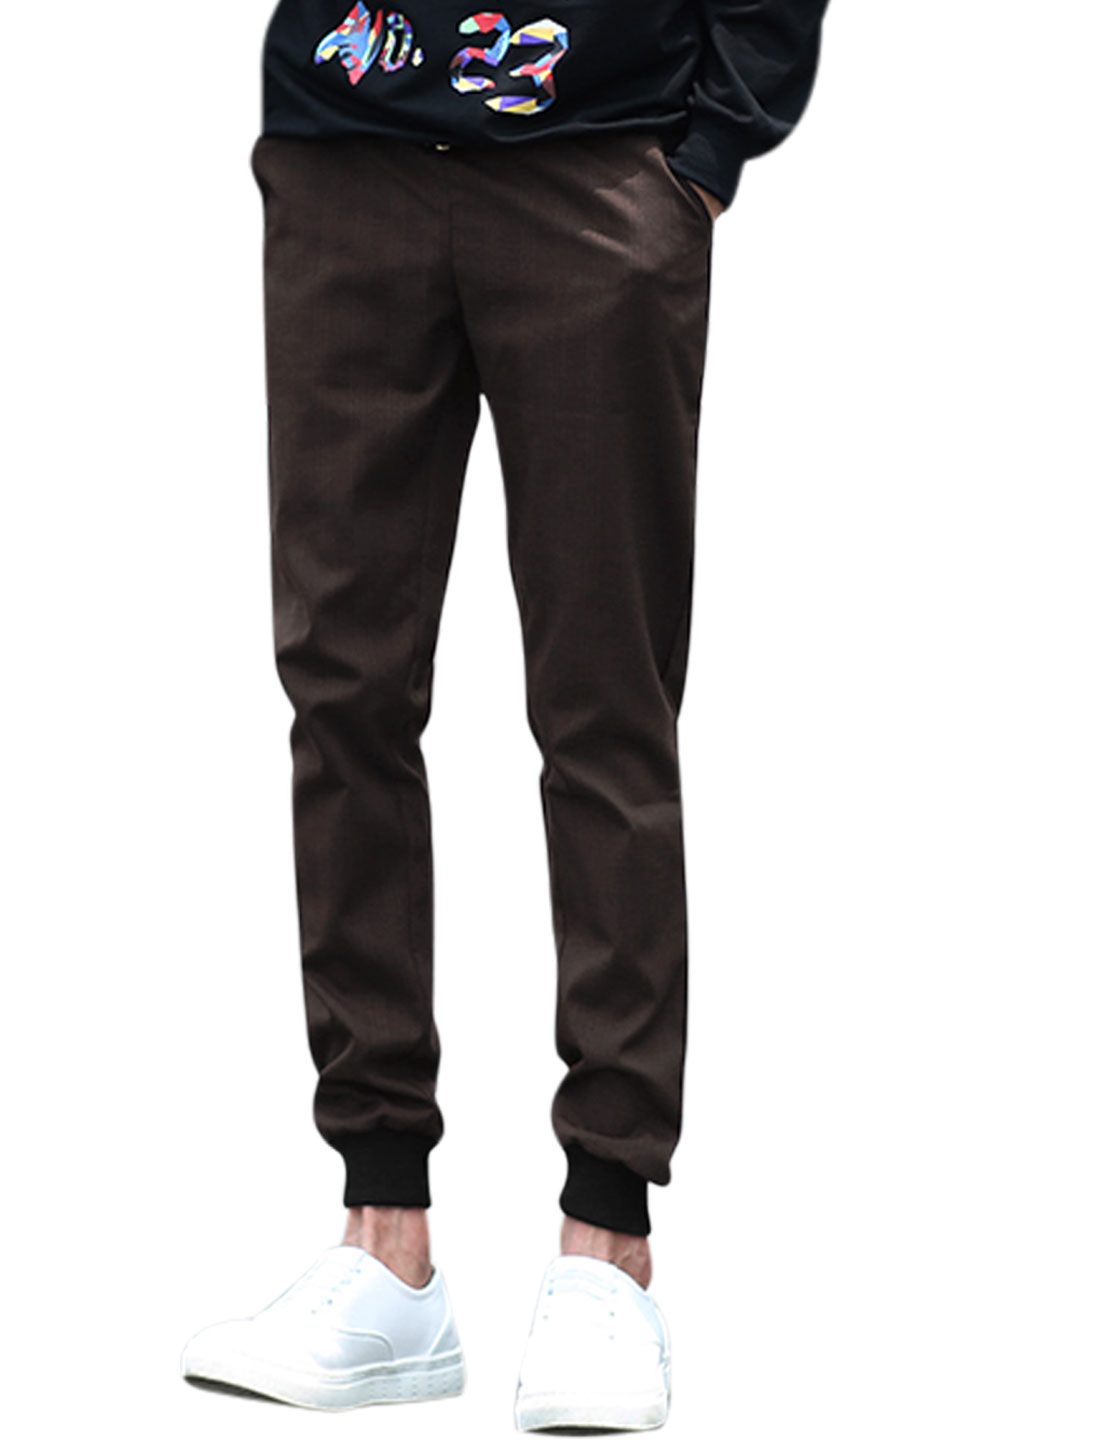 Men Drawstring Waist Ribbing Cuffs Tapered Trousers Brown W30